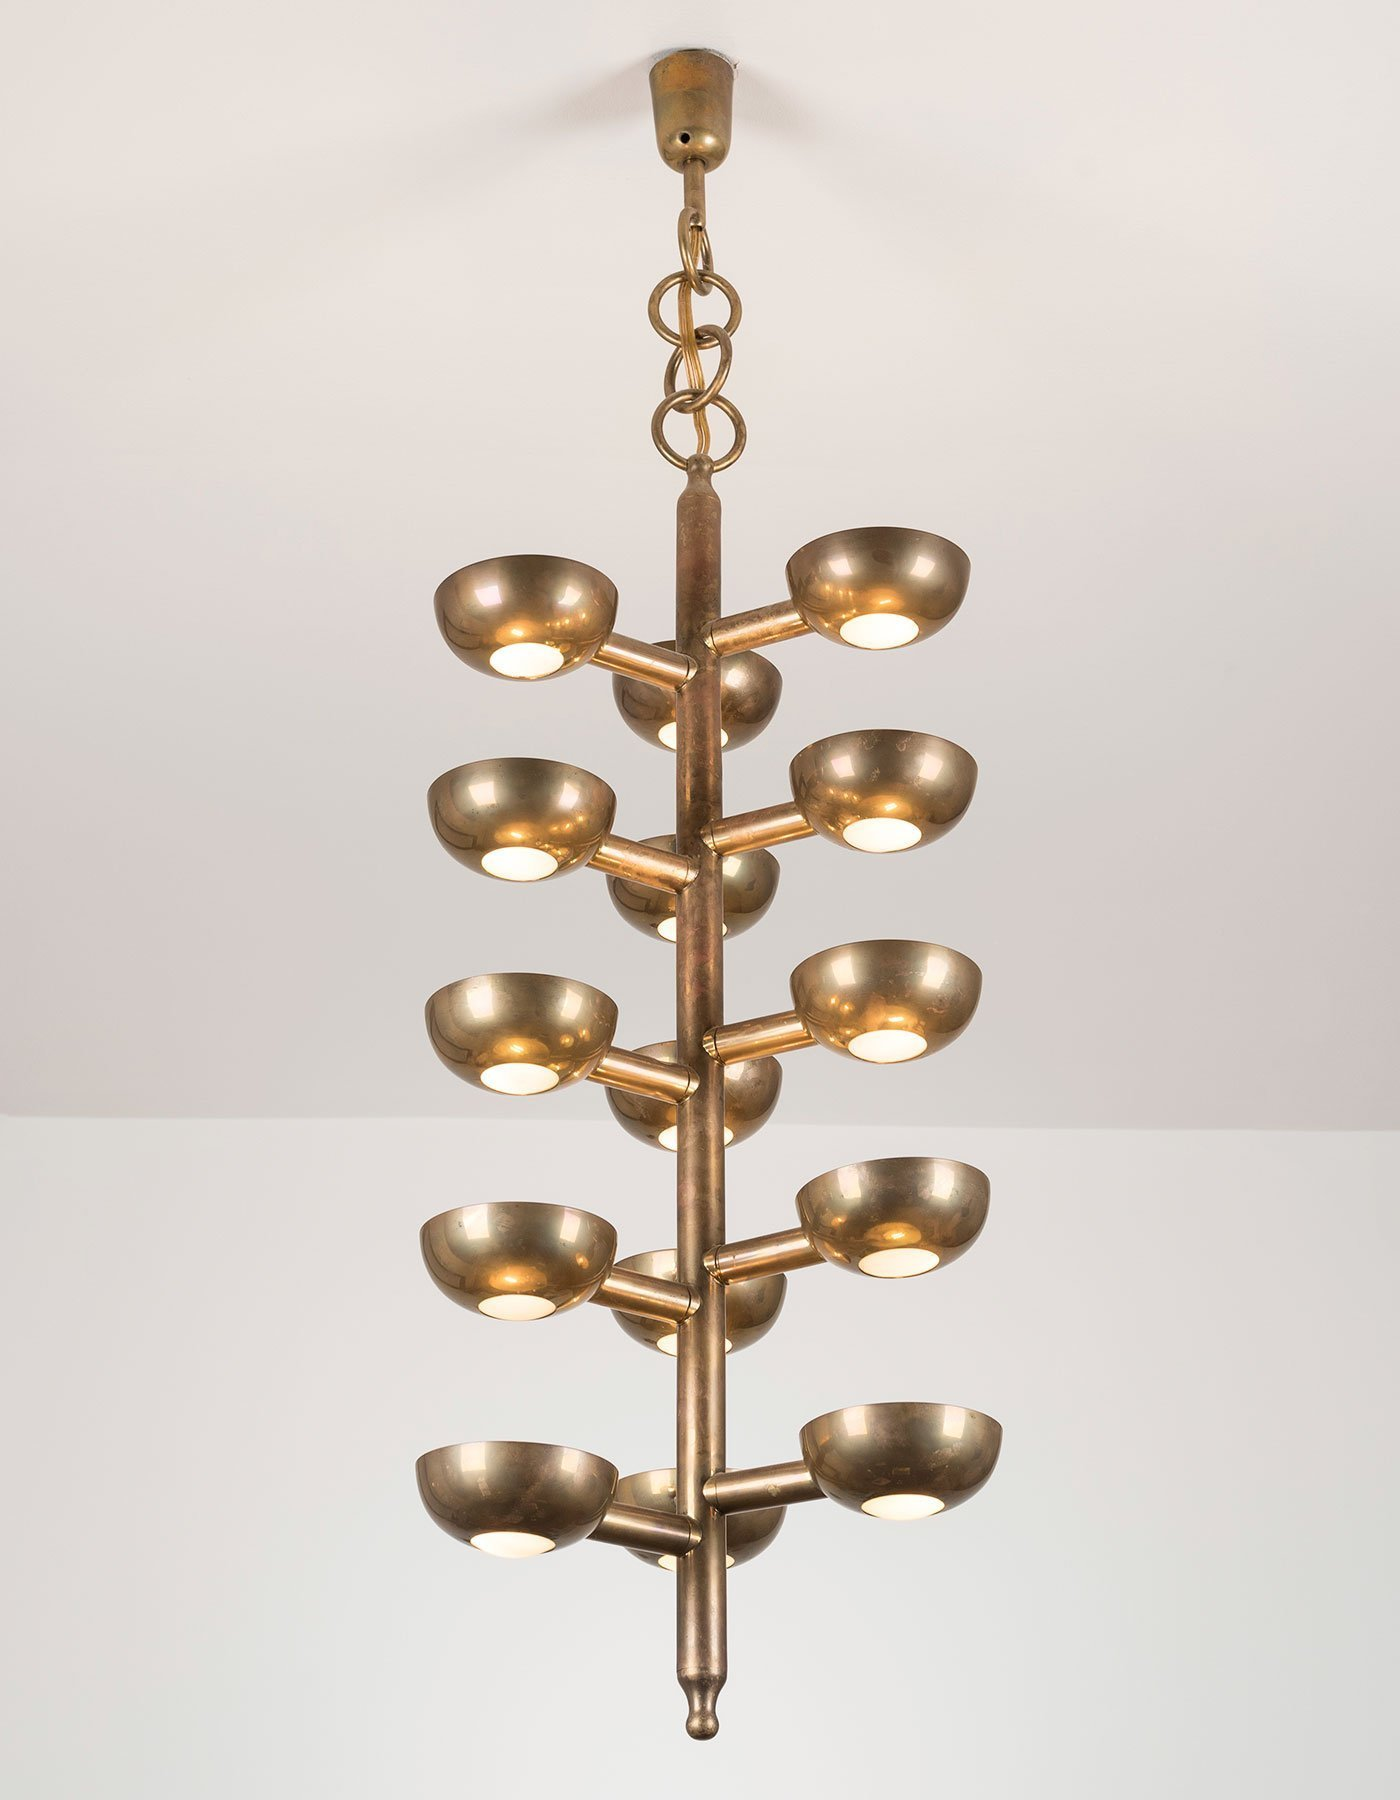 Italian designer Gino Sarfatti brass ceiling light model 2049 manufactured by Arteluce (portrait with lights on) at design and furniture gallery Casati Gallery